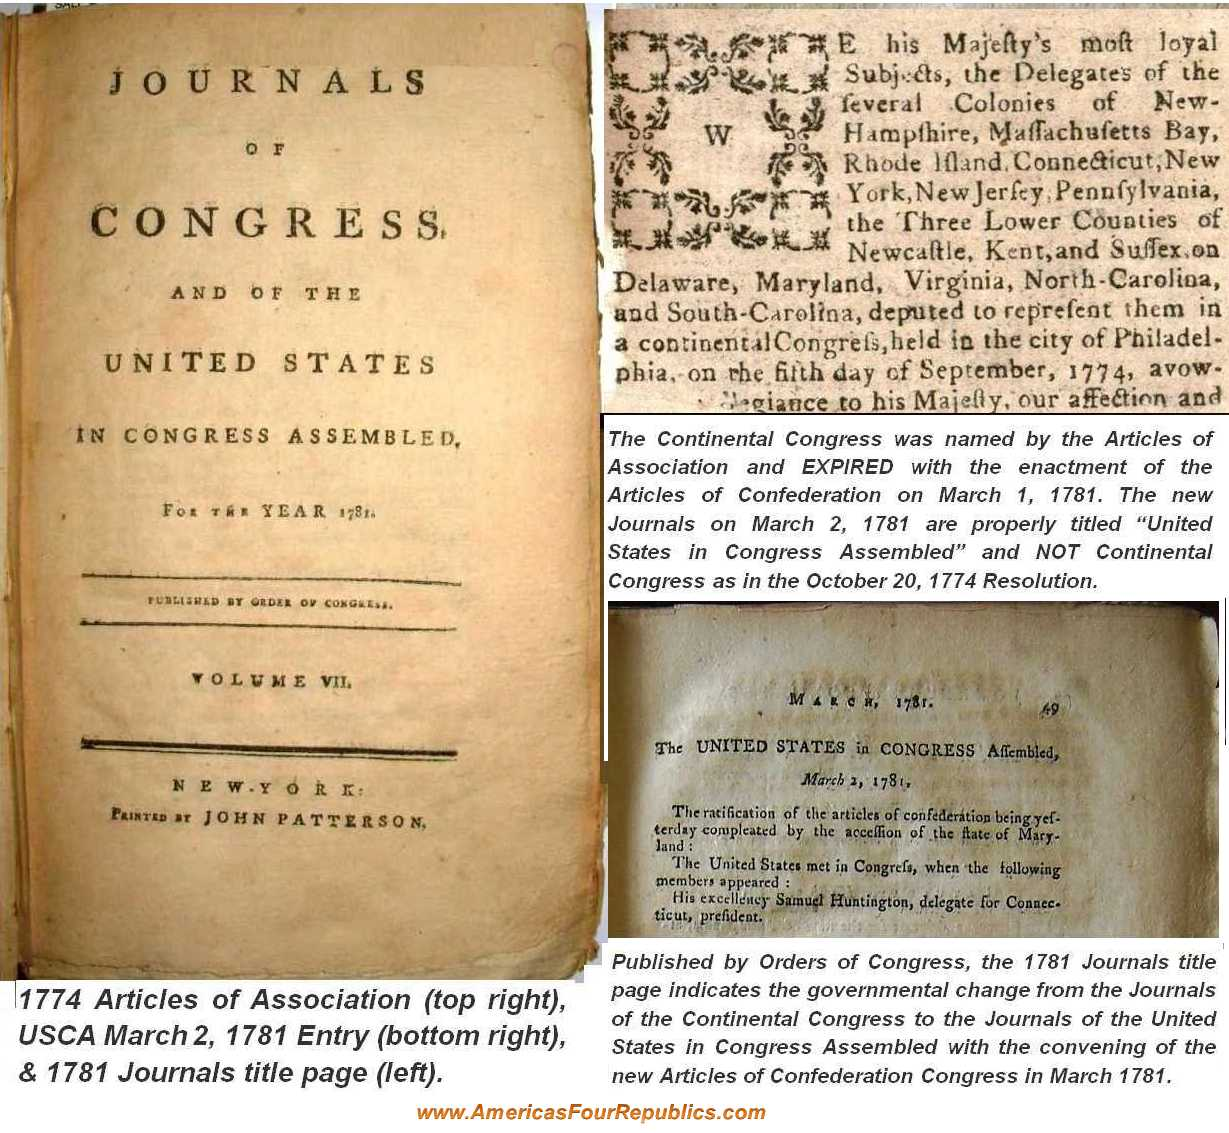 constitution and the article of confederation Against the united states under this constitution, as under the confederation   the eighteenth article of amendment to the constitution of the united states.